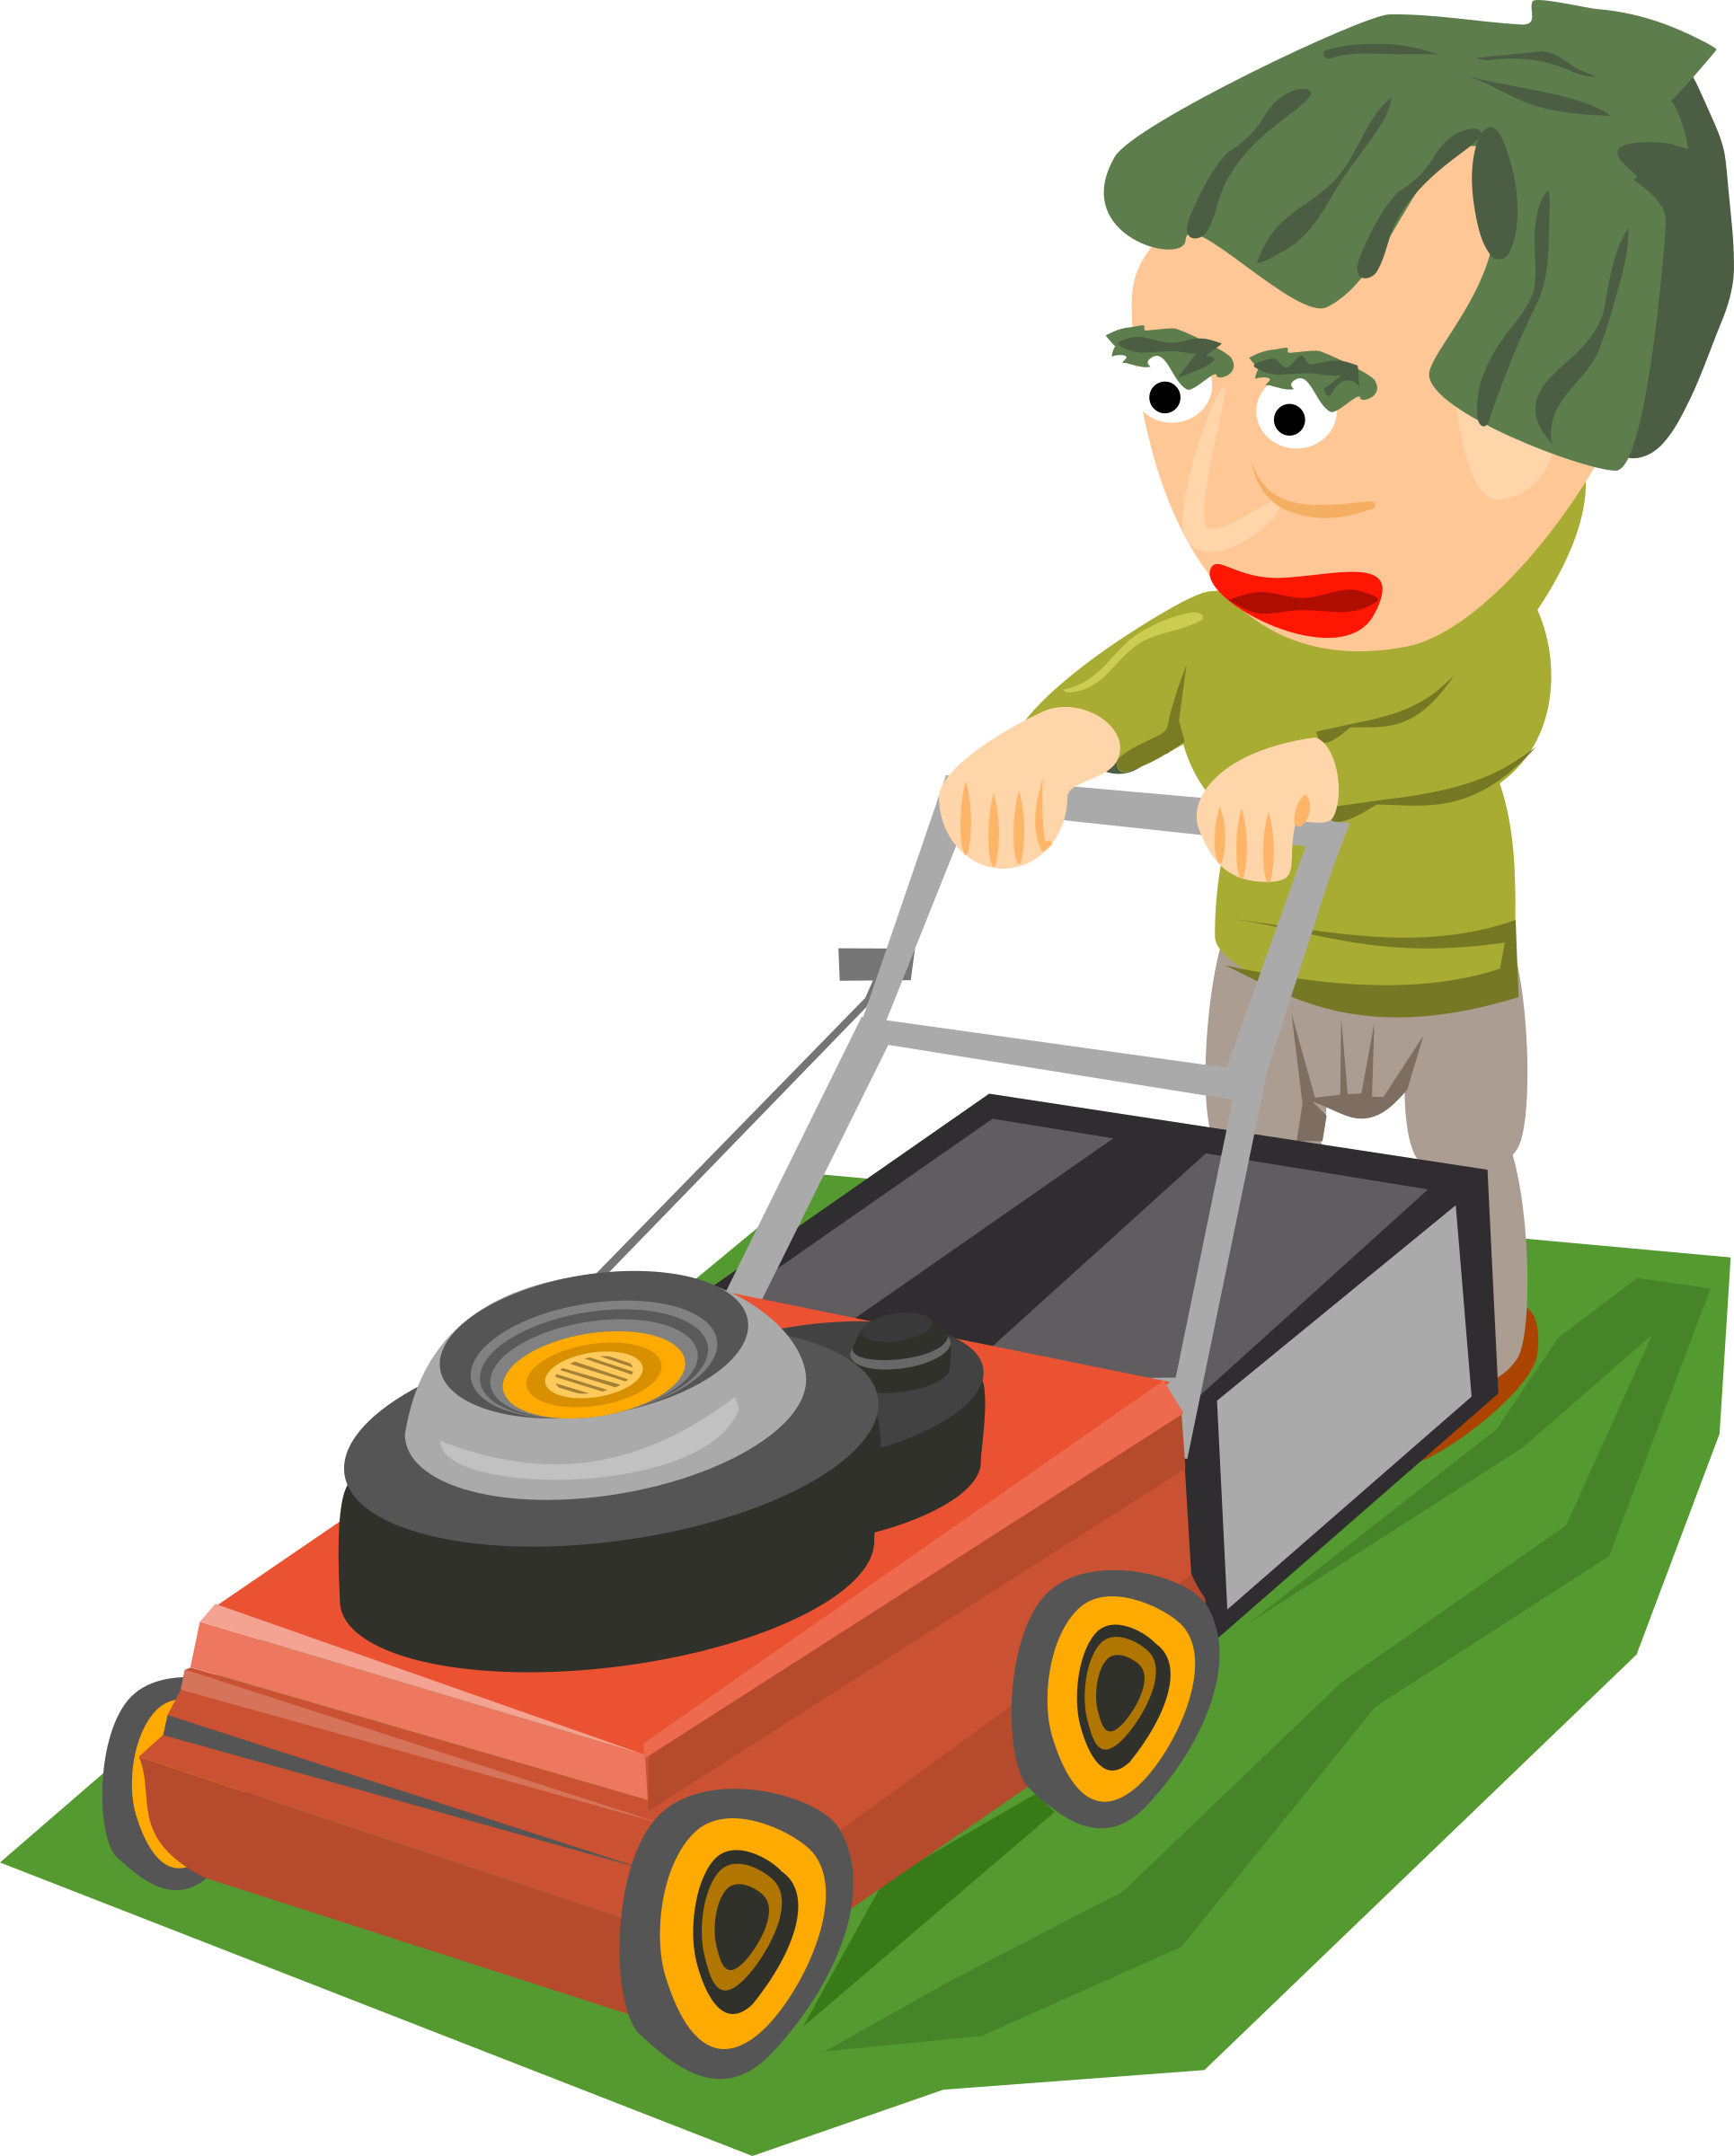 Mowing clipart. The lawn big image